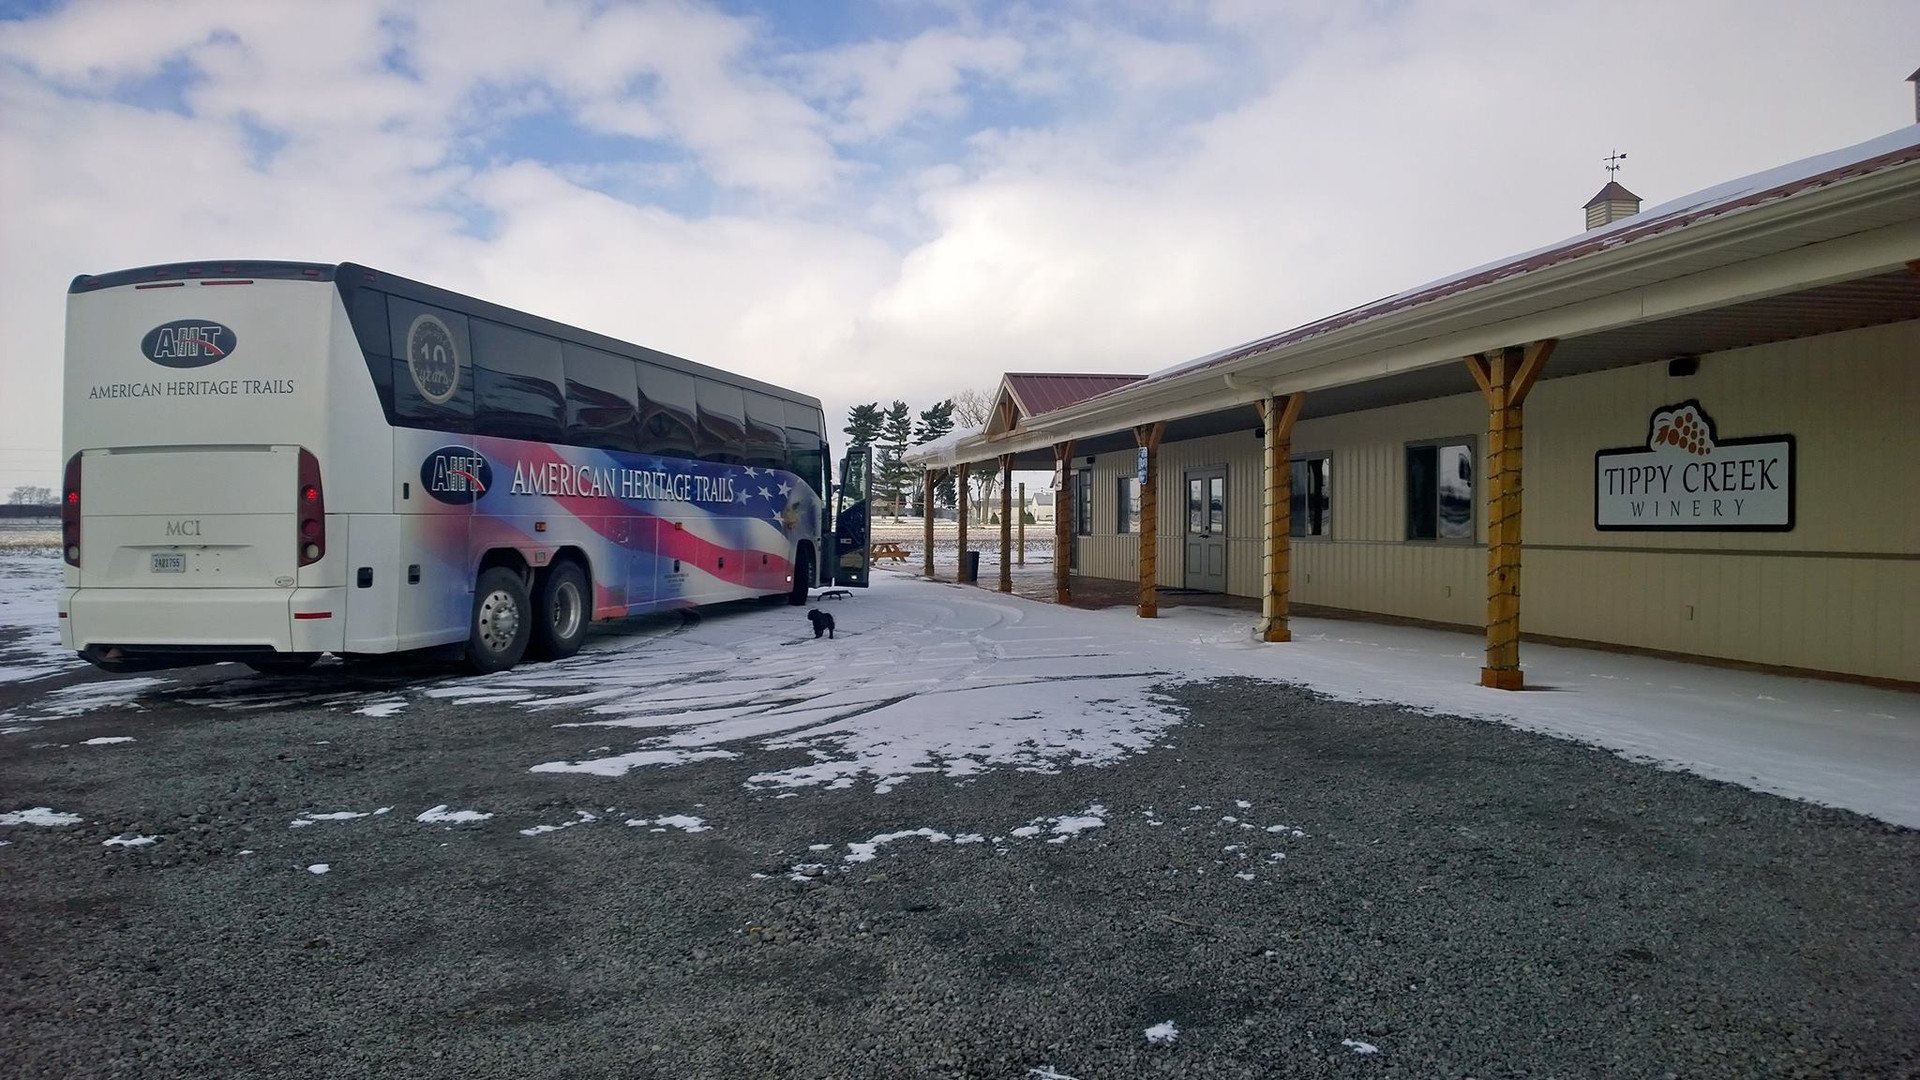 bus tours and rentals